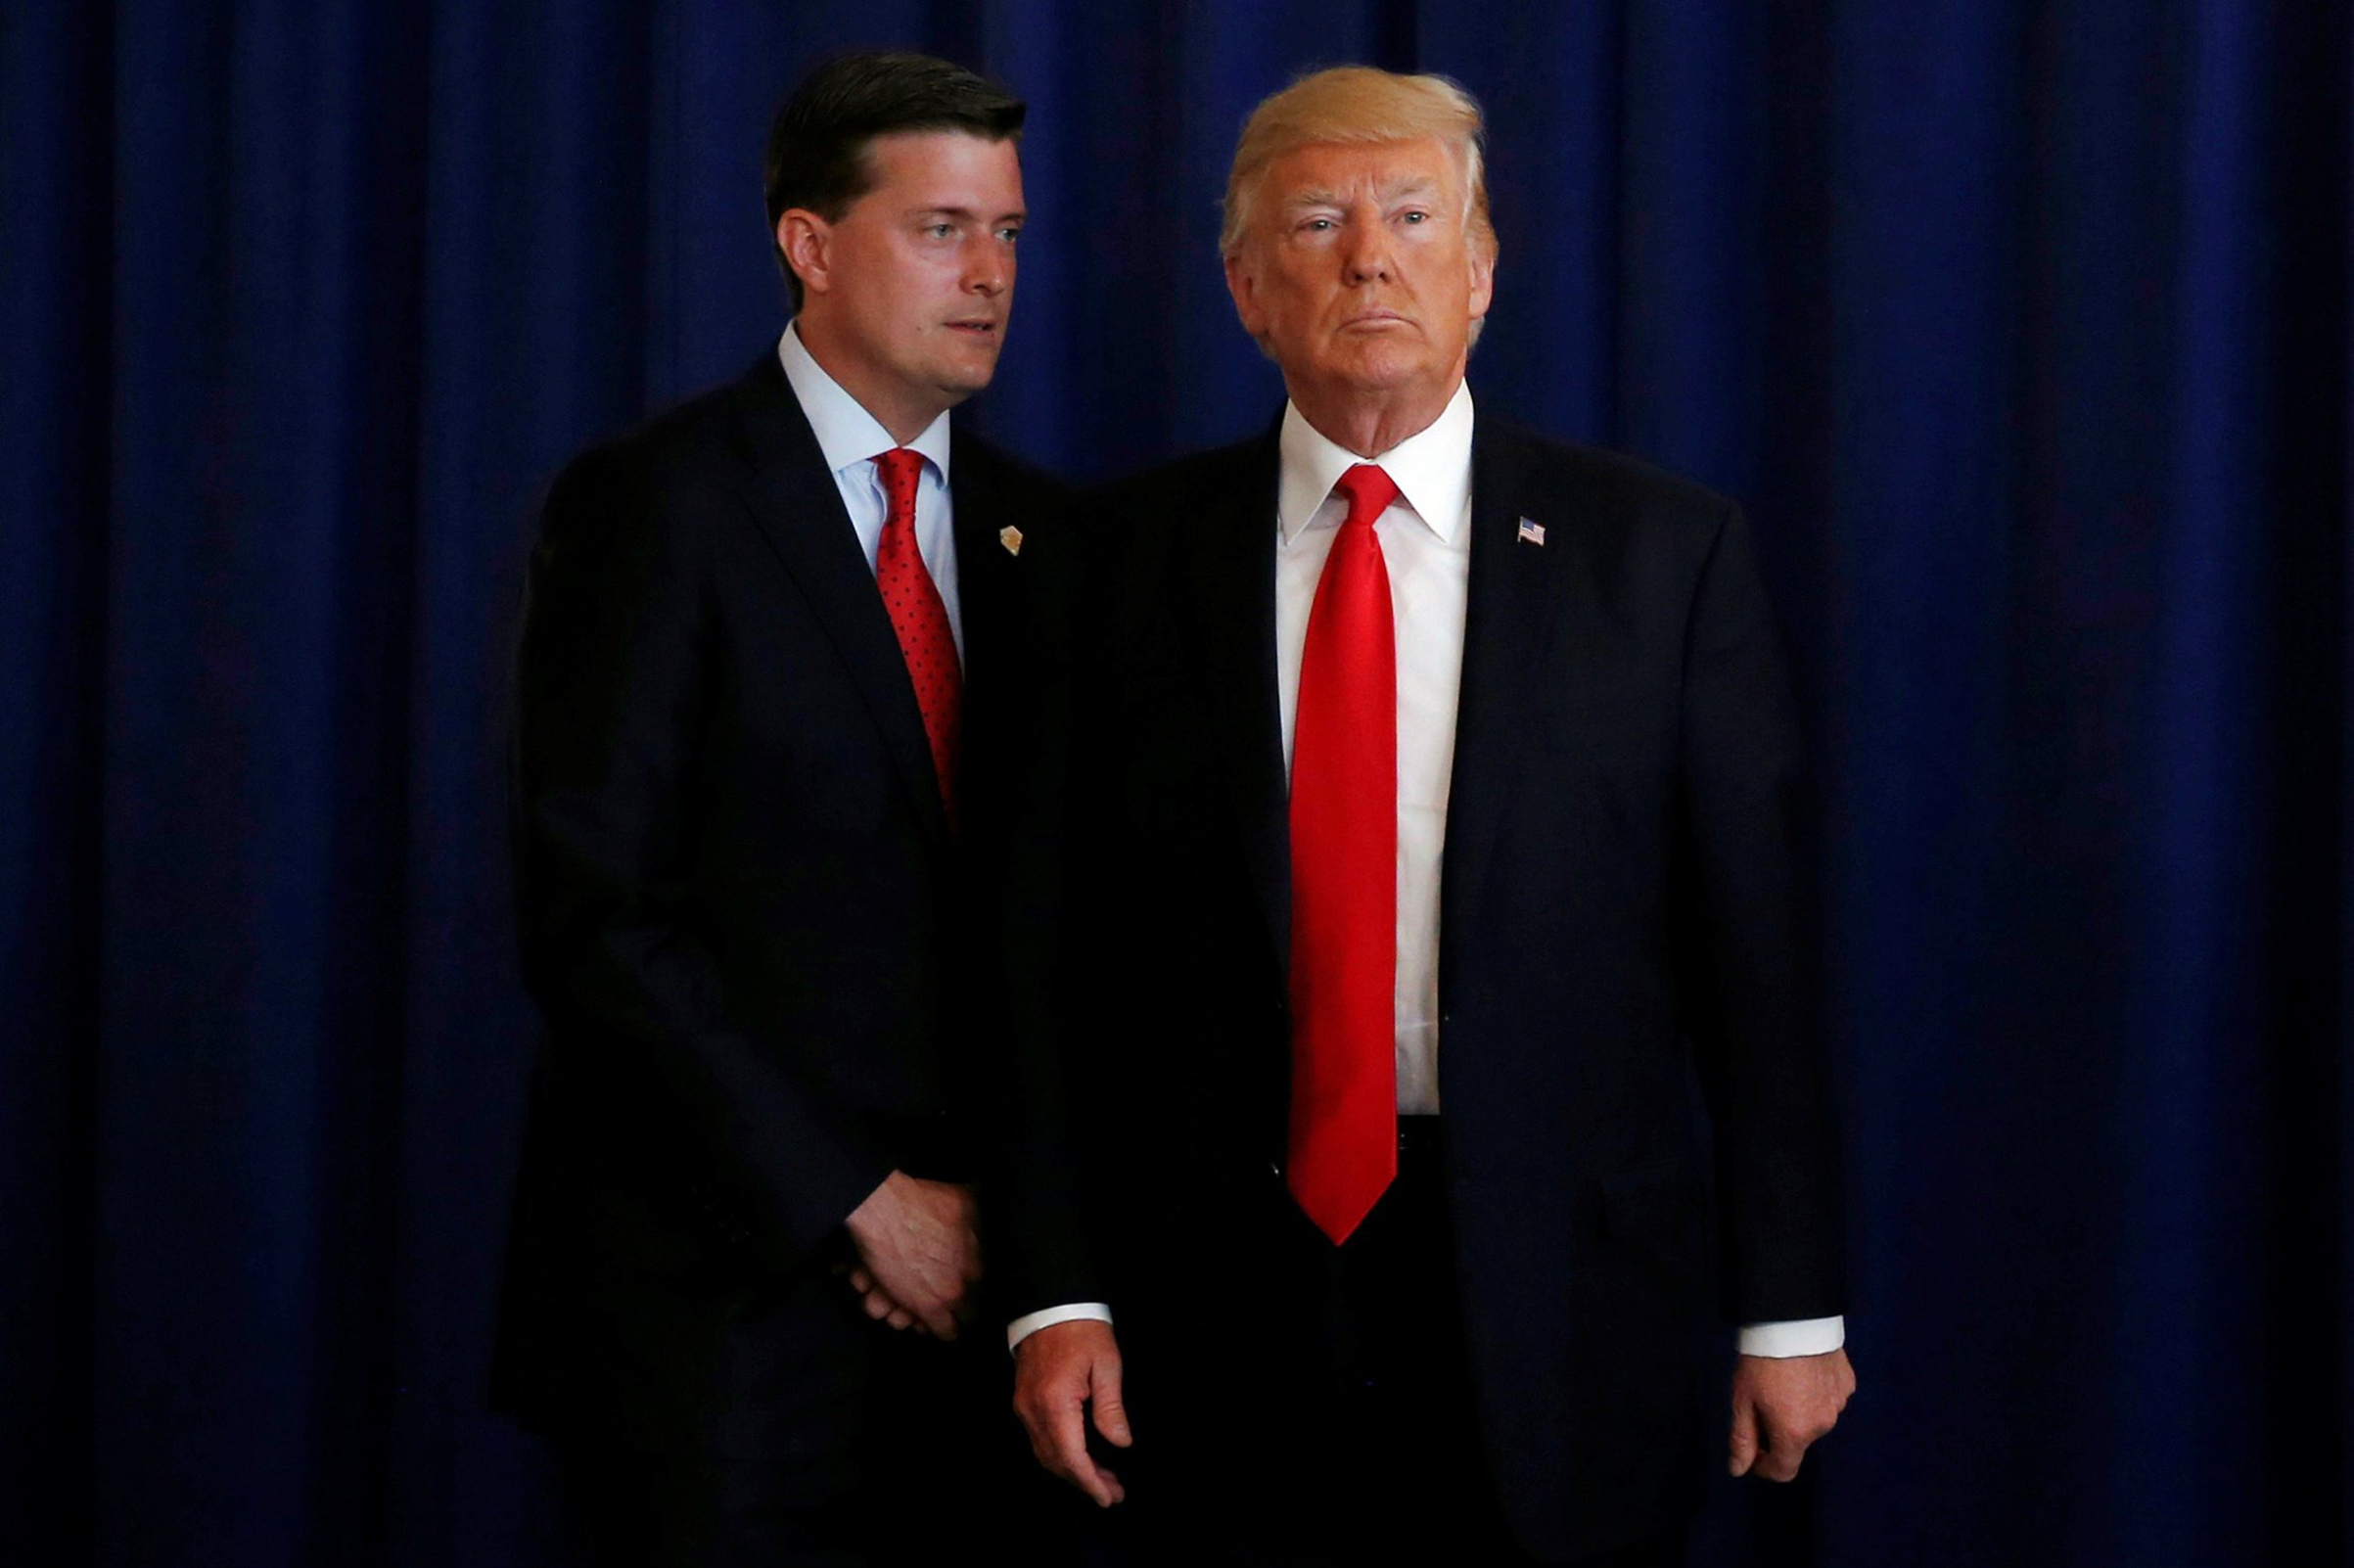 White House Staff Secretary Rob Porter speaks to President Donald Trump at his golf estate in Bedminster, New Jersey, Aug. 12, 2017.